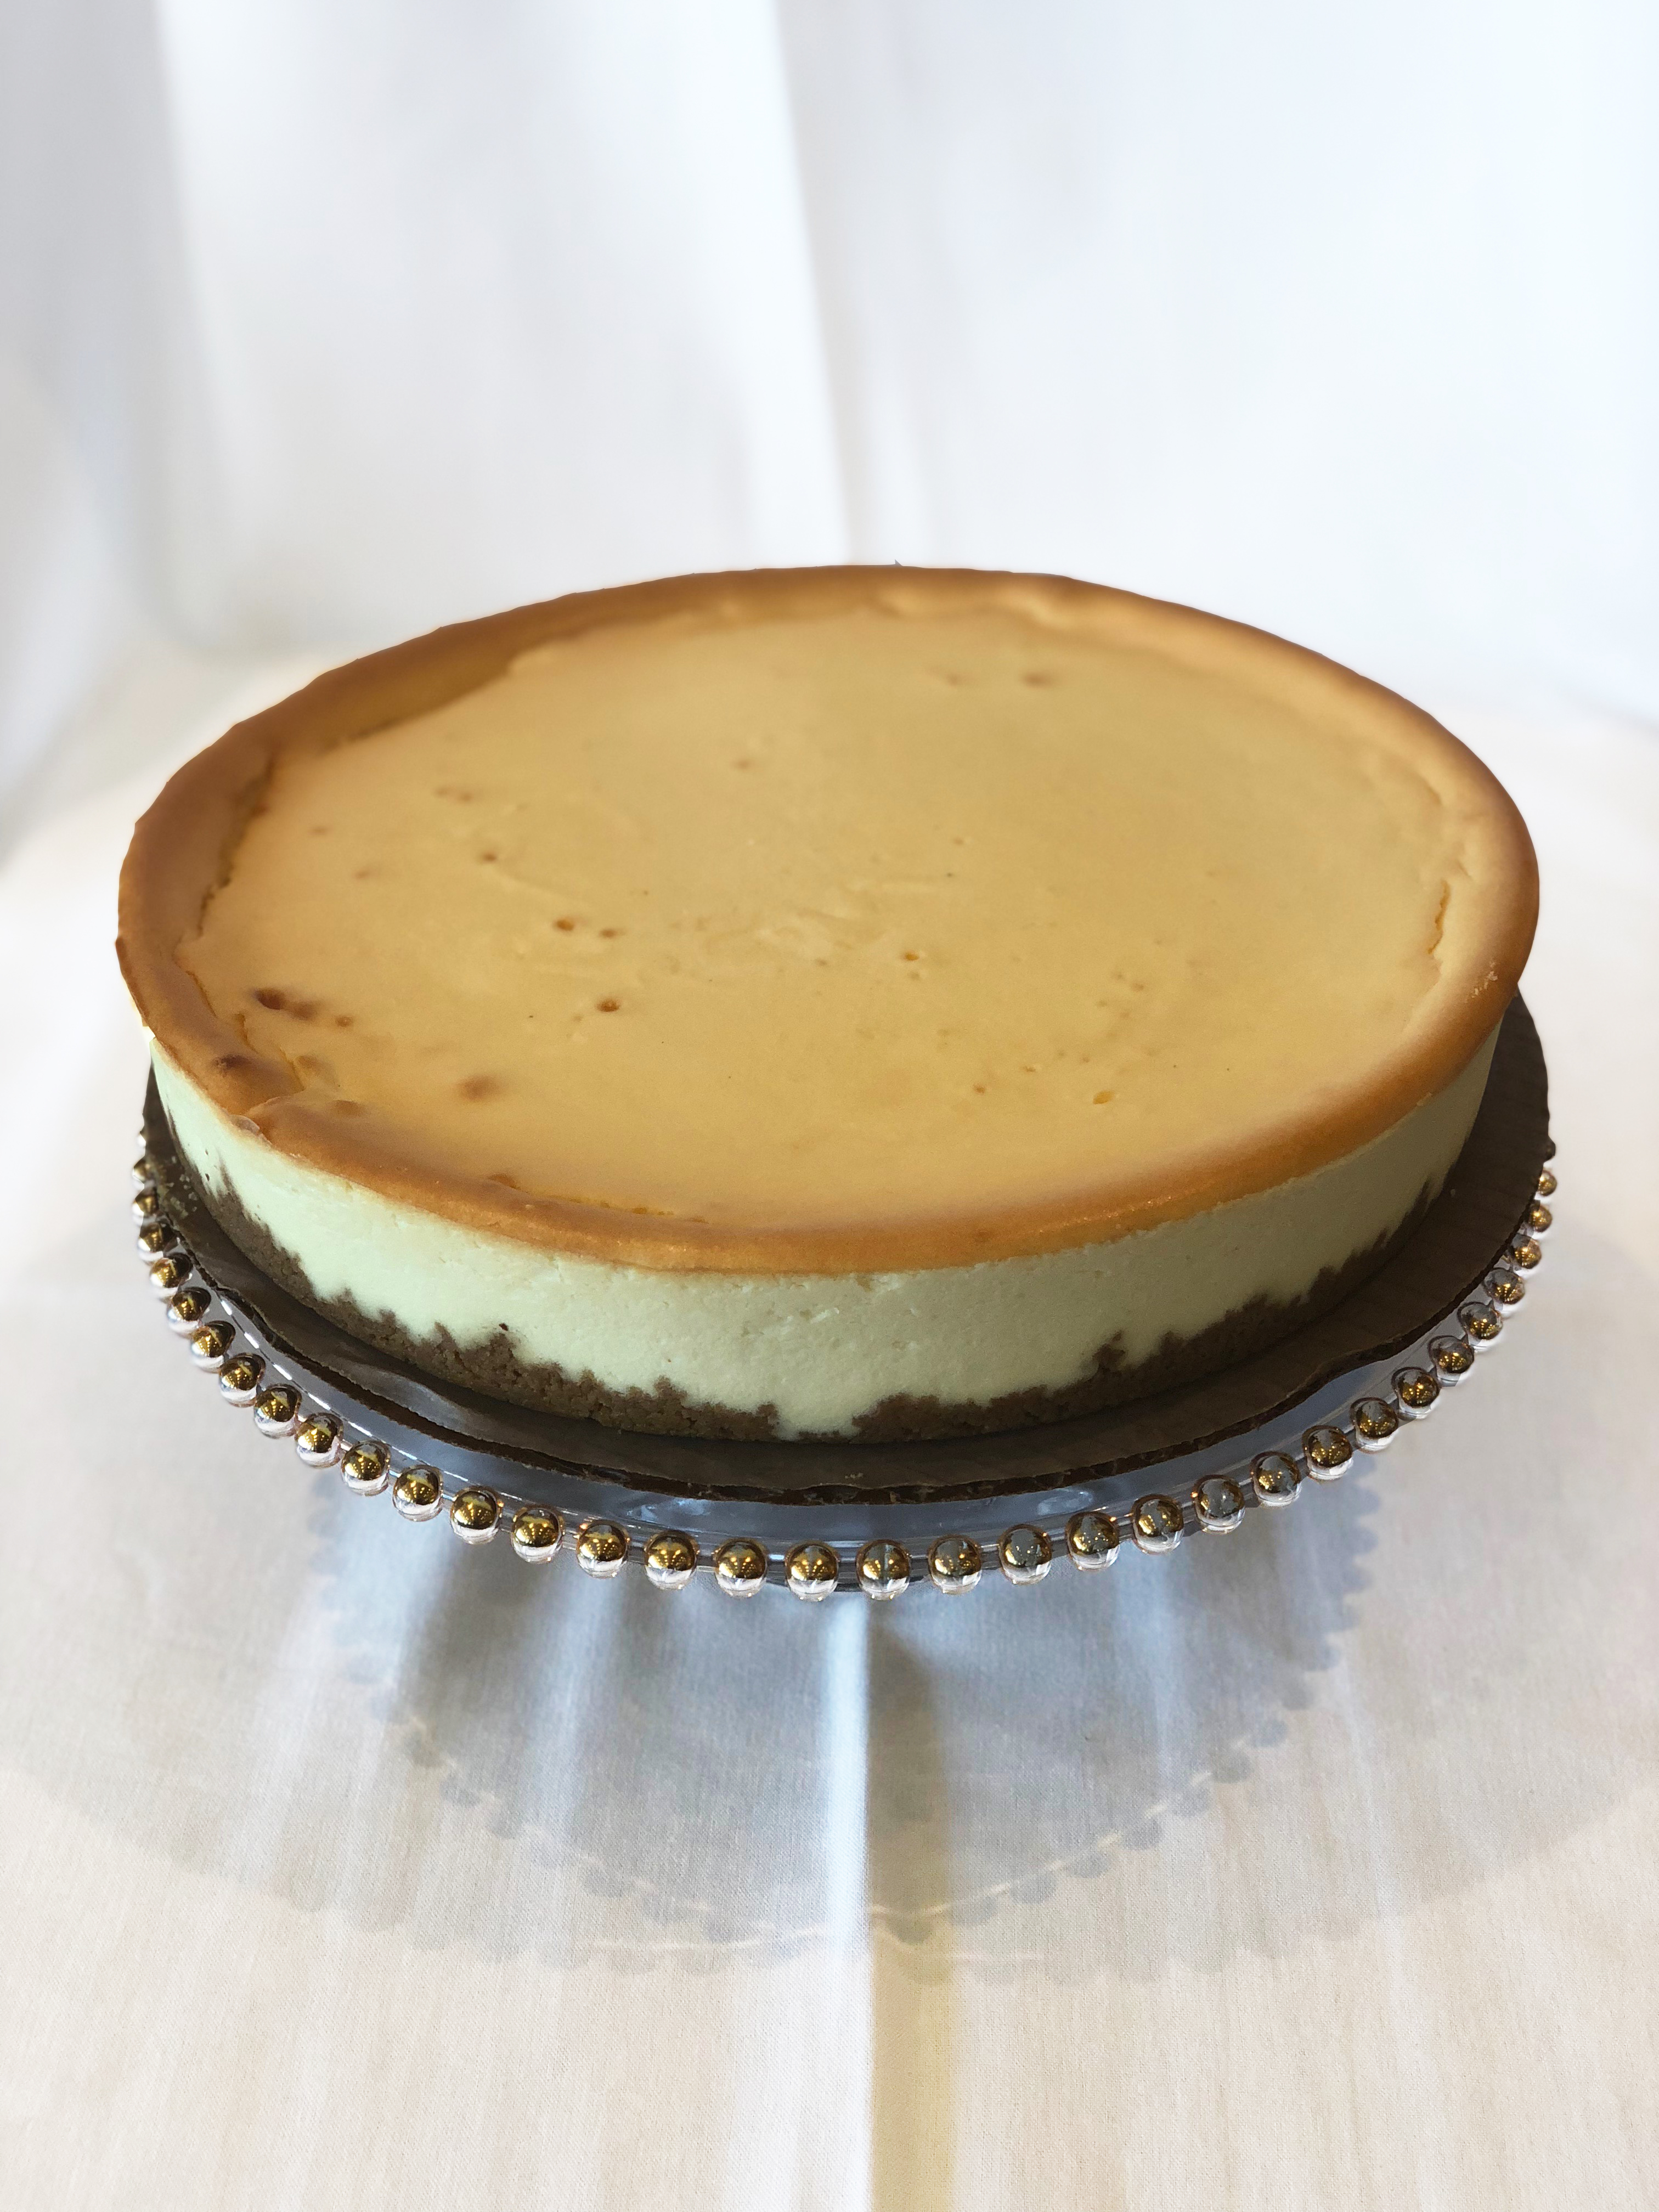 Whole New York Style Cheesecake Image